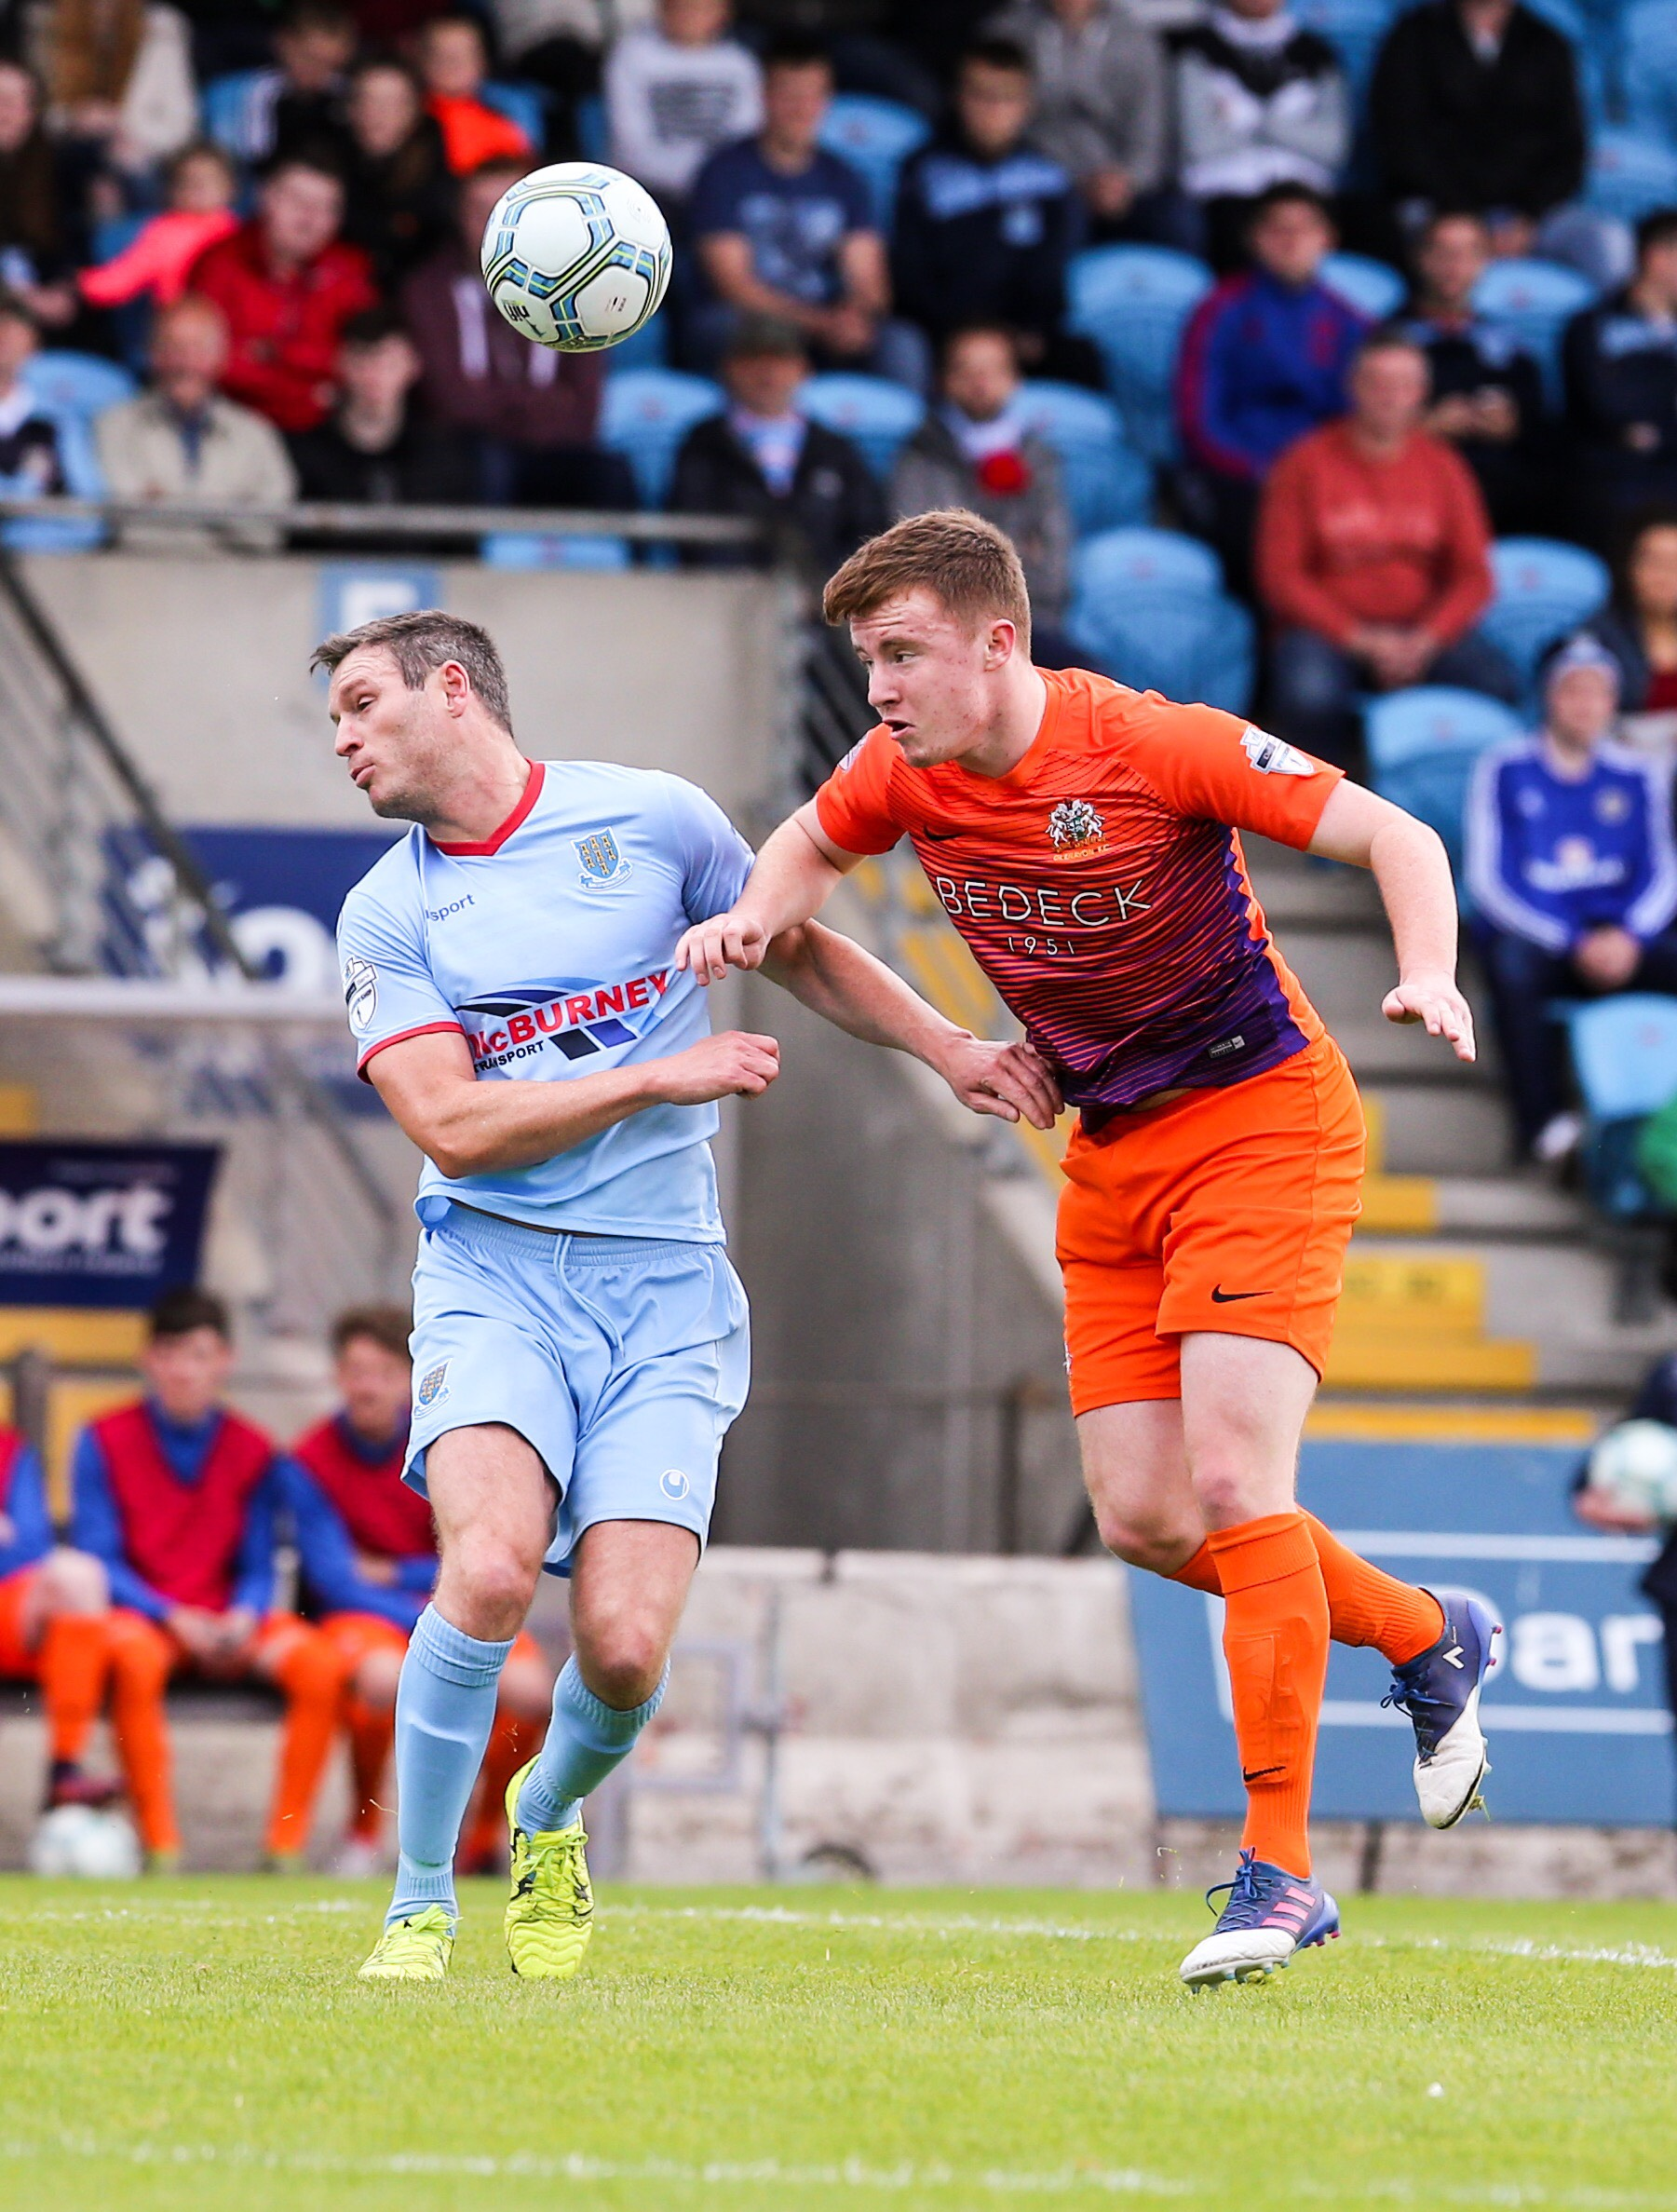 Preview: Ballymena v Glenavon